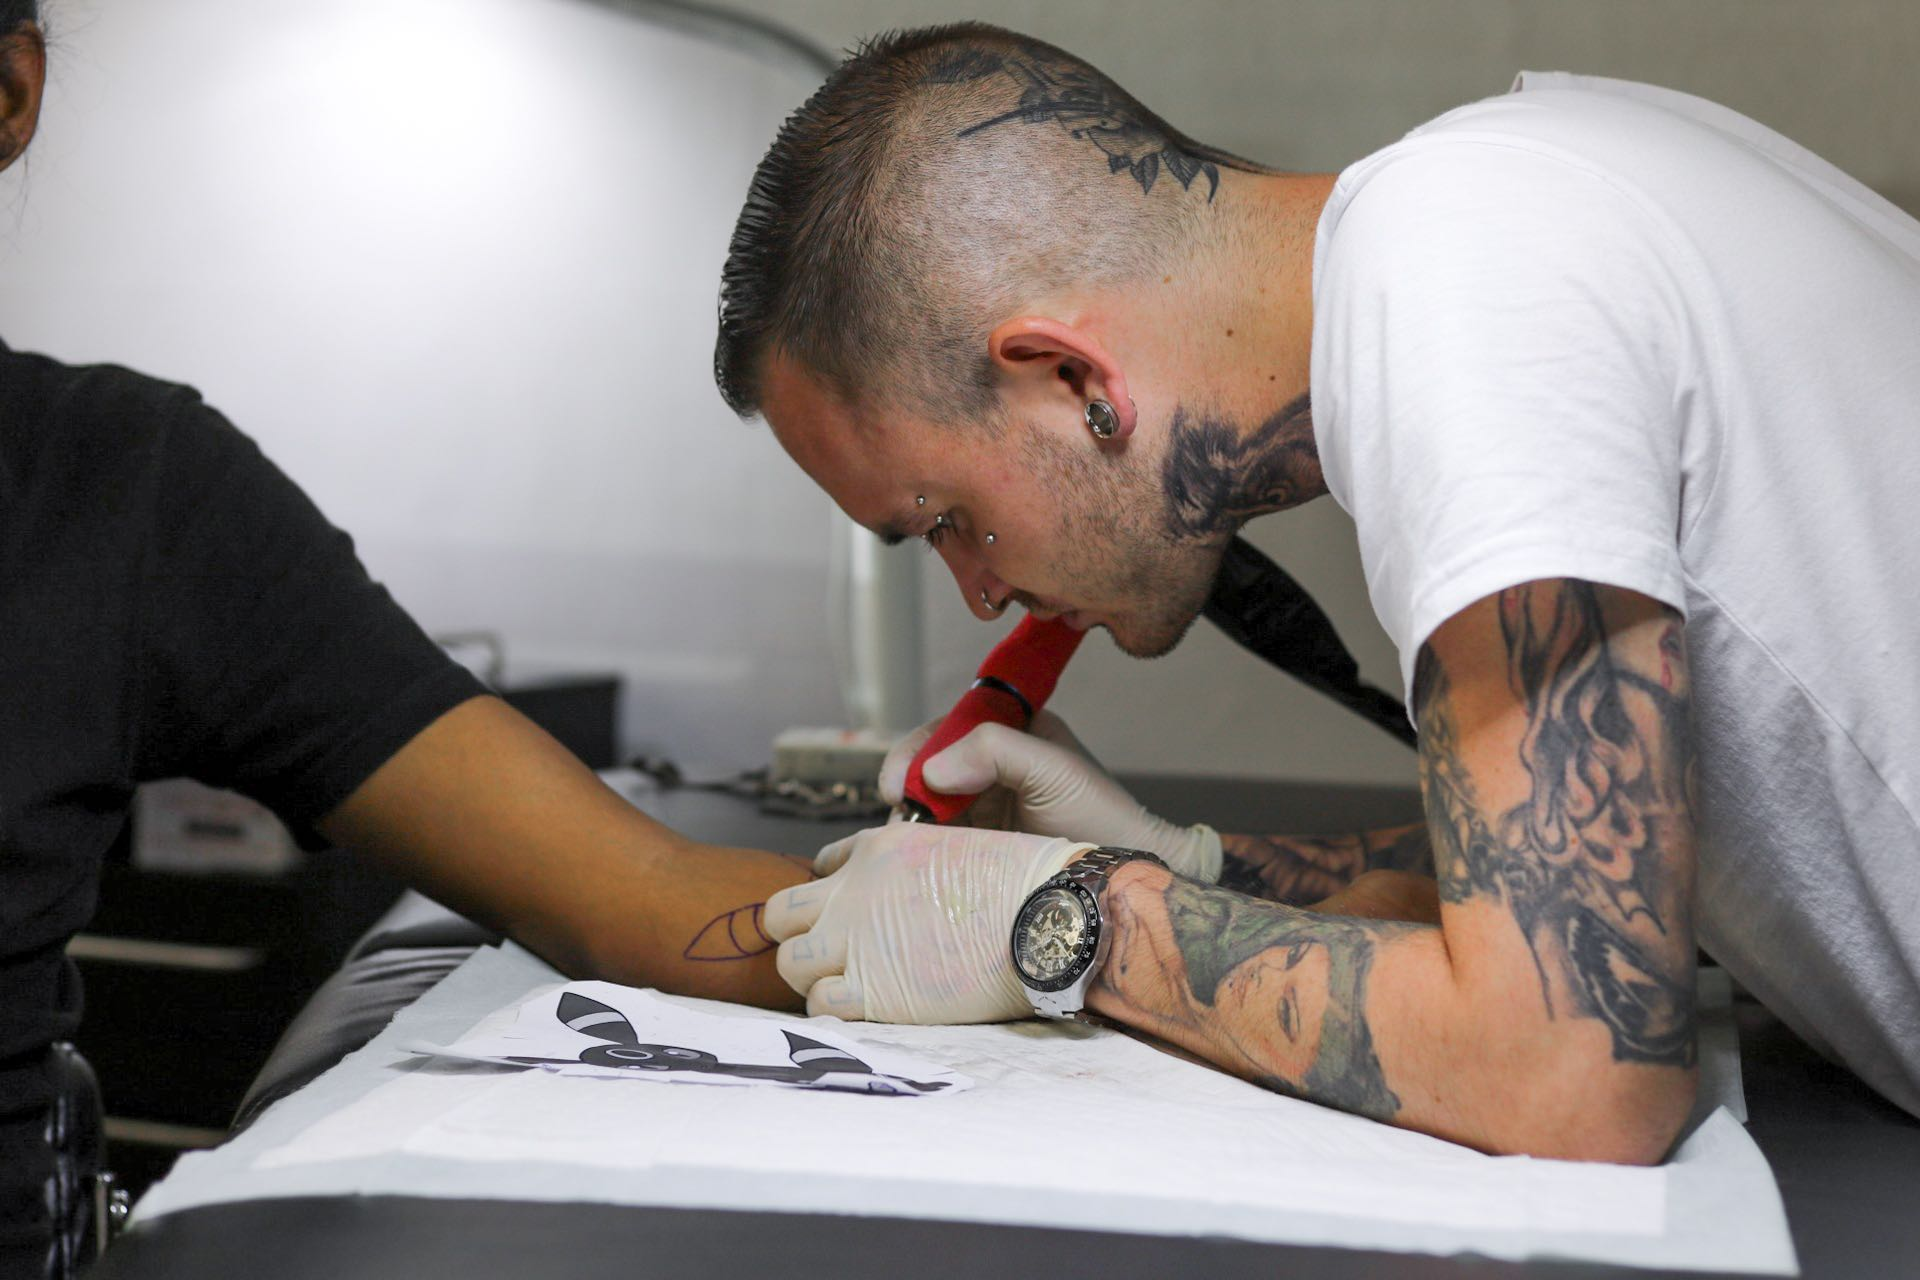 Interview with Sheldon Shaw of Fine Line Tattoos